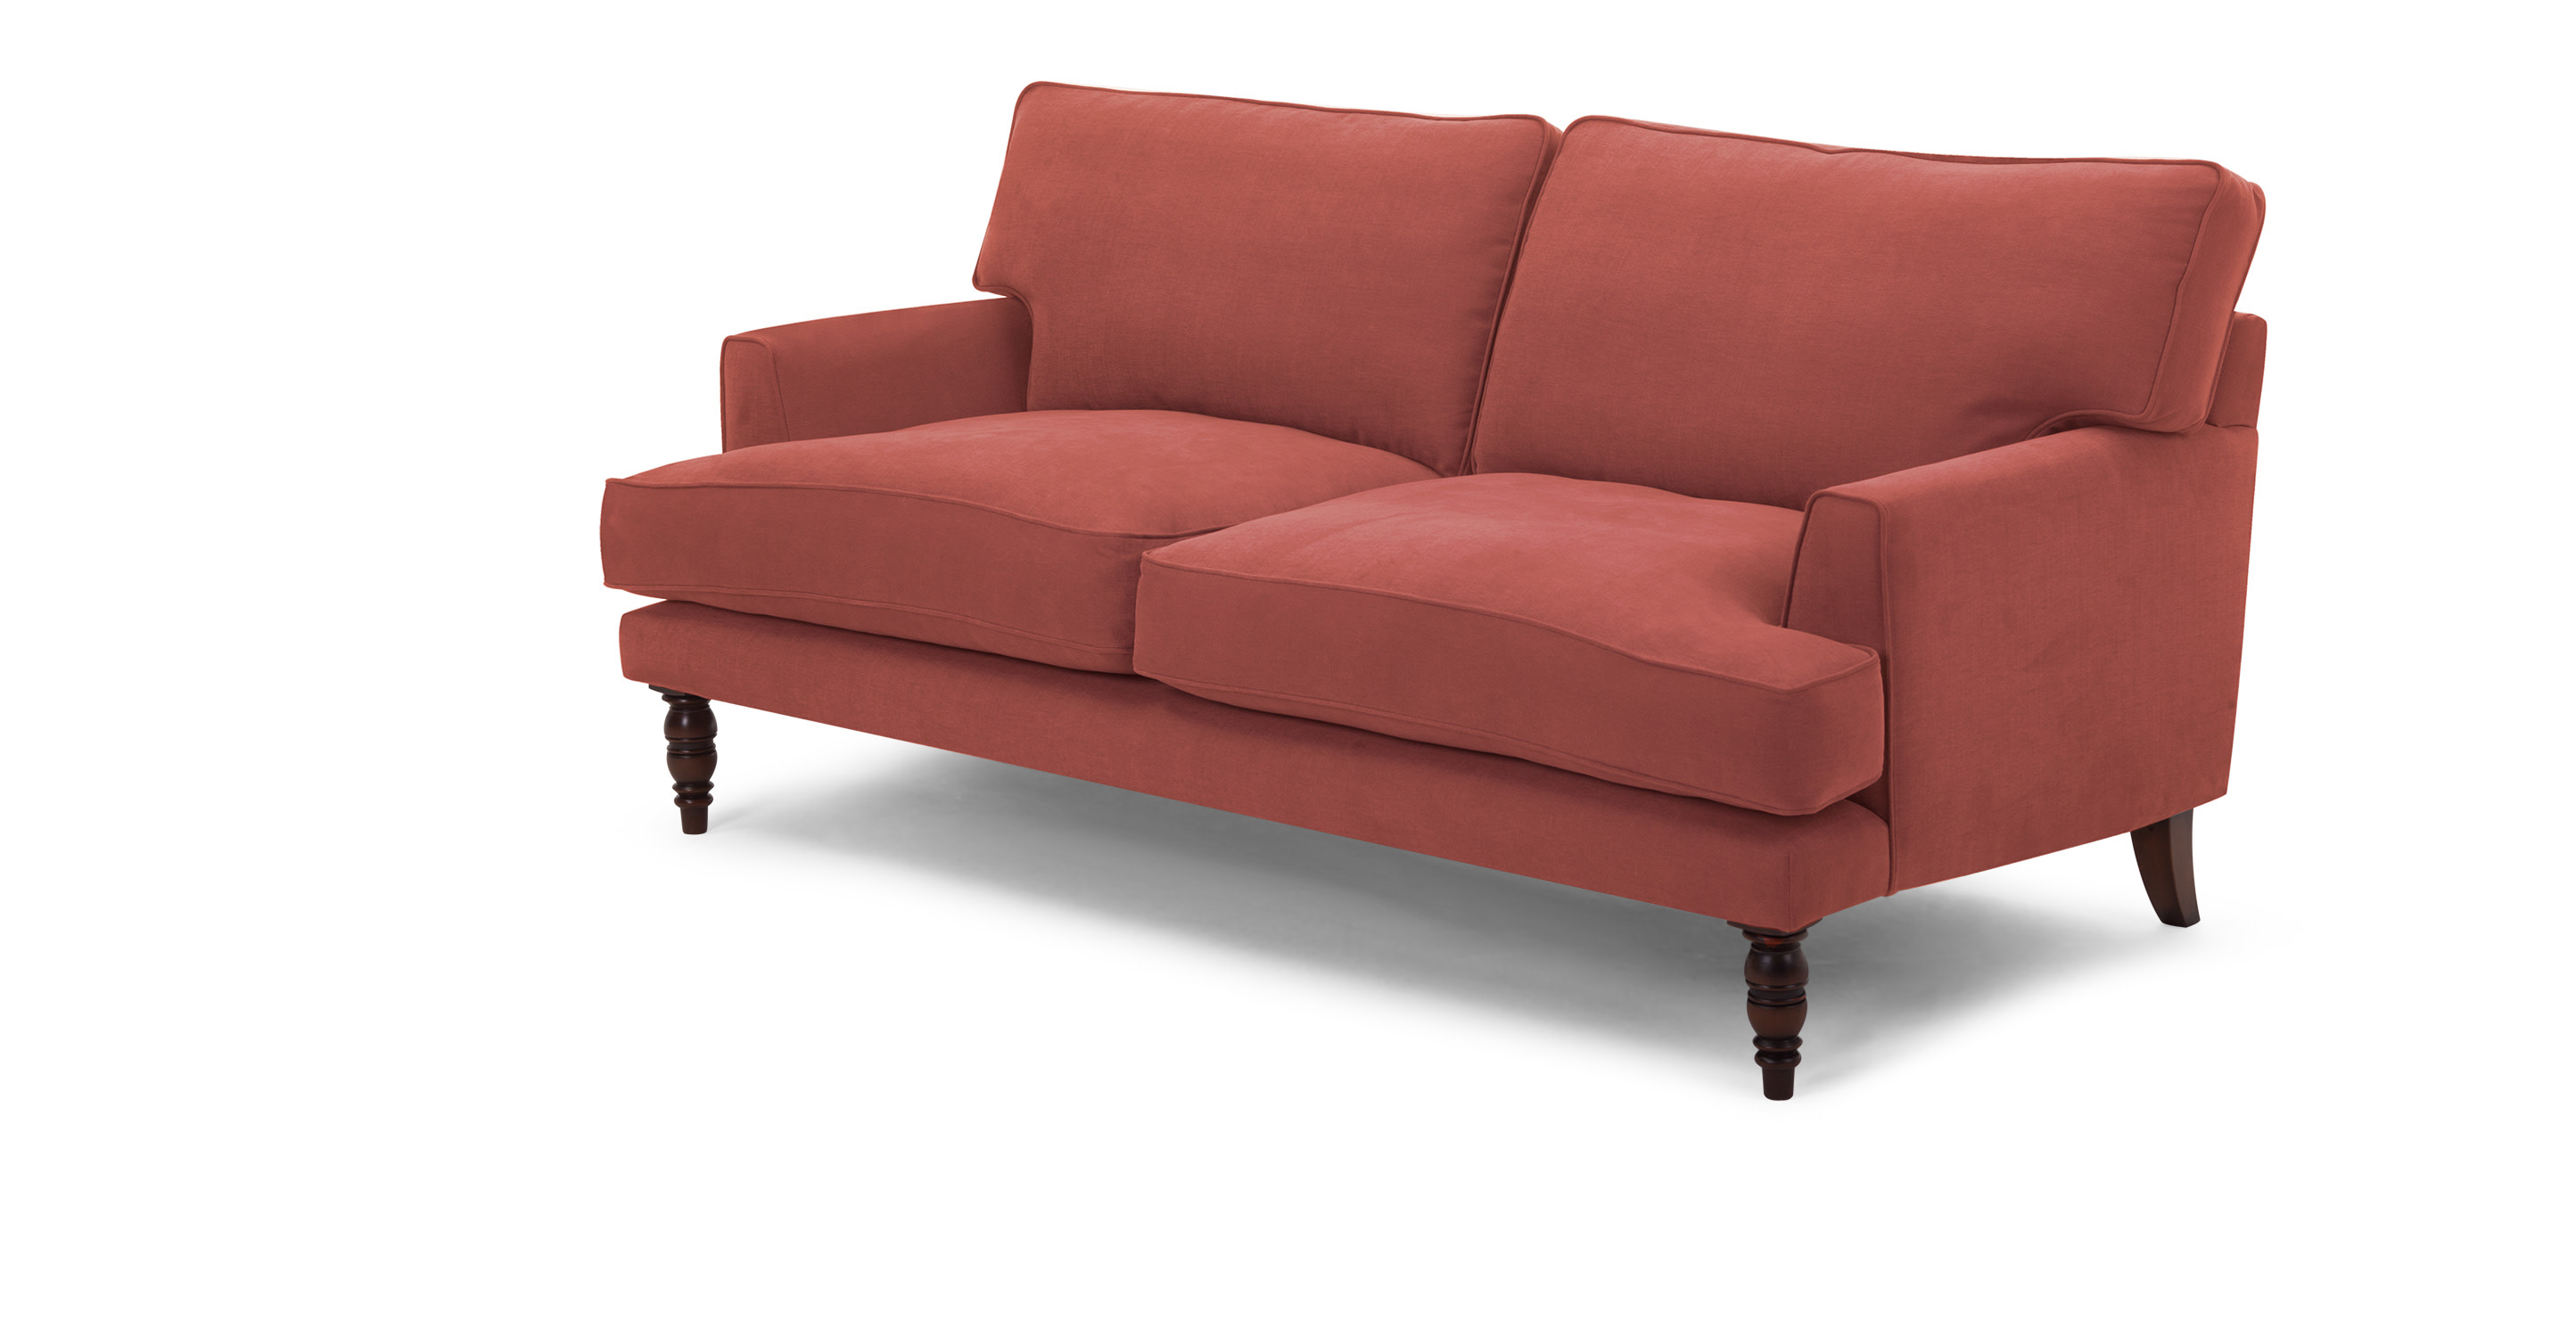 Lawrens 2 Seater Sofa In Terracotta Red